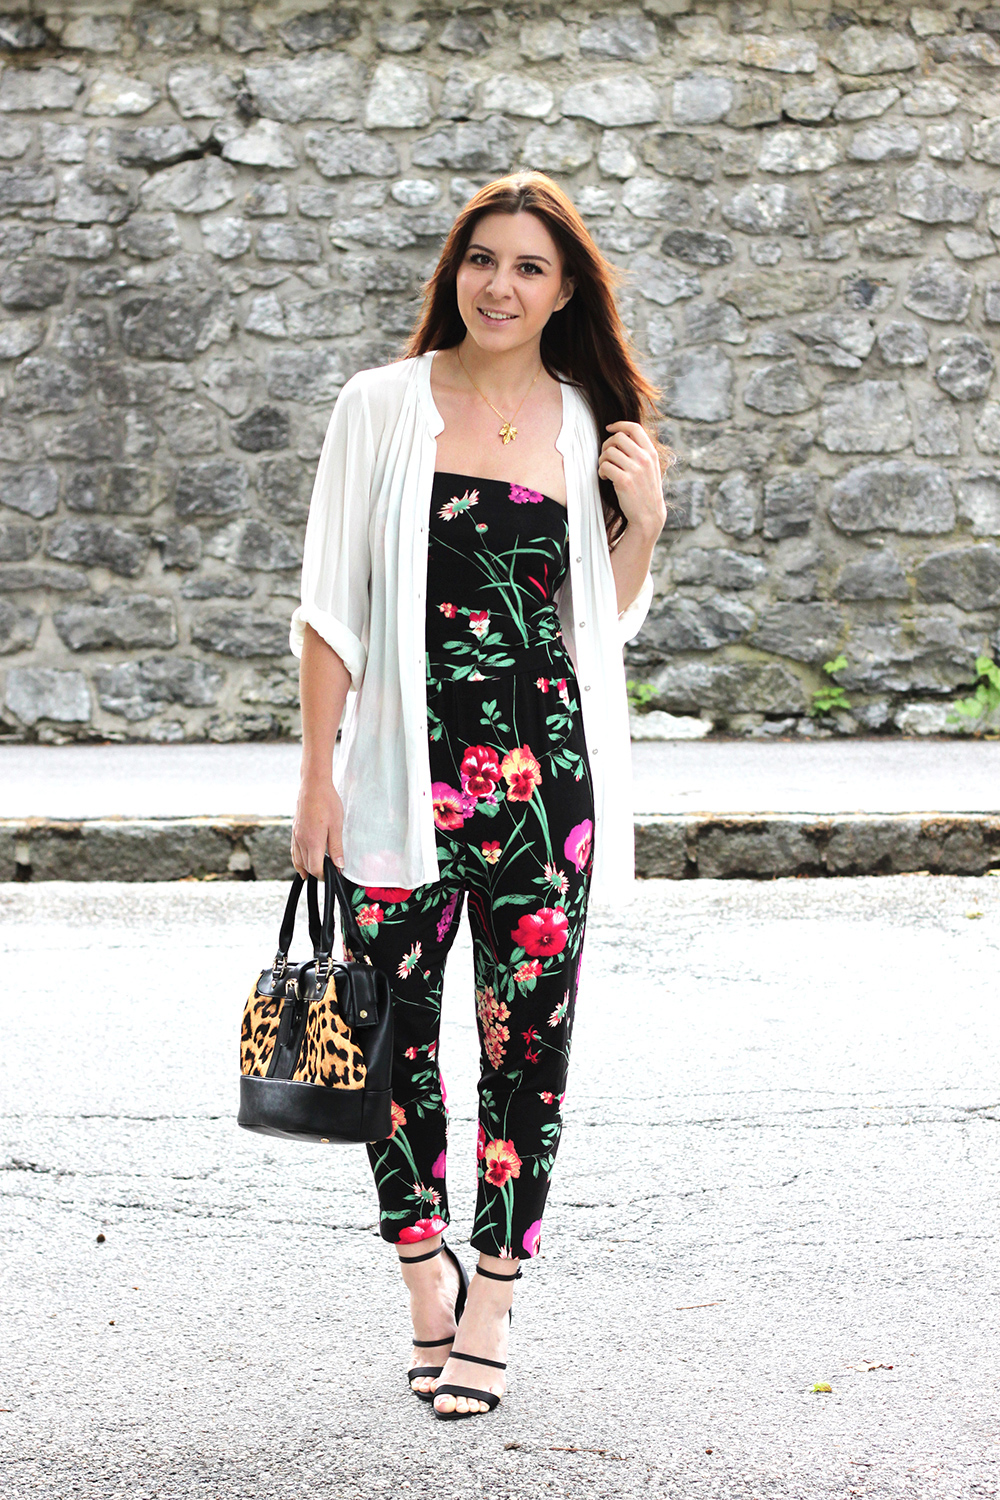 whoismocca, fashionblog tiro, fashionblog österreich, walg jumpsuit, floral jumpsuit, overall, playsuit, bluse oversize, H&M, WalG, Tasche Leopard LYDC, Print-Mix, High Heels Sandaletten filigran, Great Lengths Extensions, Jumpsuit mit Blumen